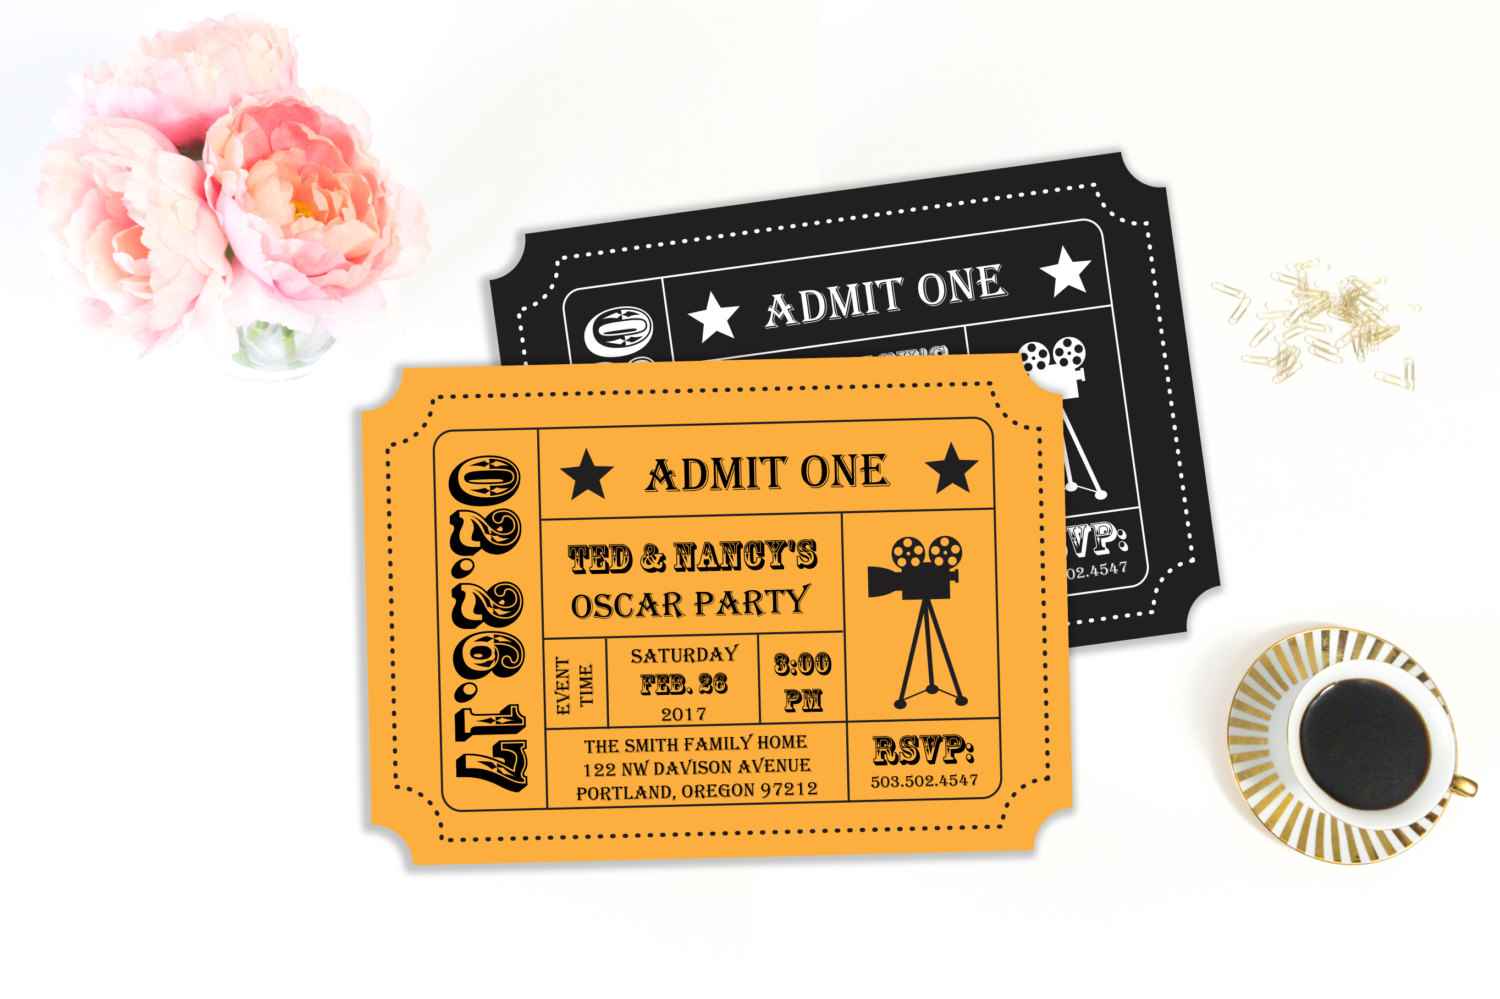 Printable pirate party decorations amp supplies free templates - Academy Awards Party Oscar Invitation